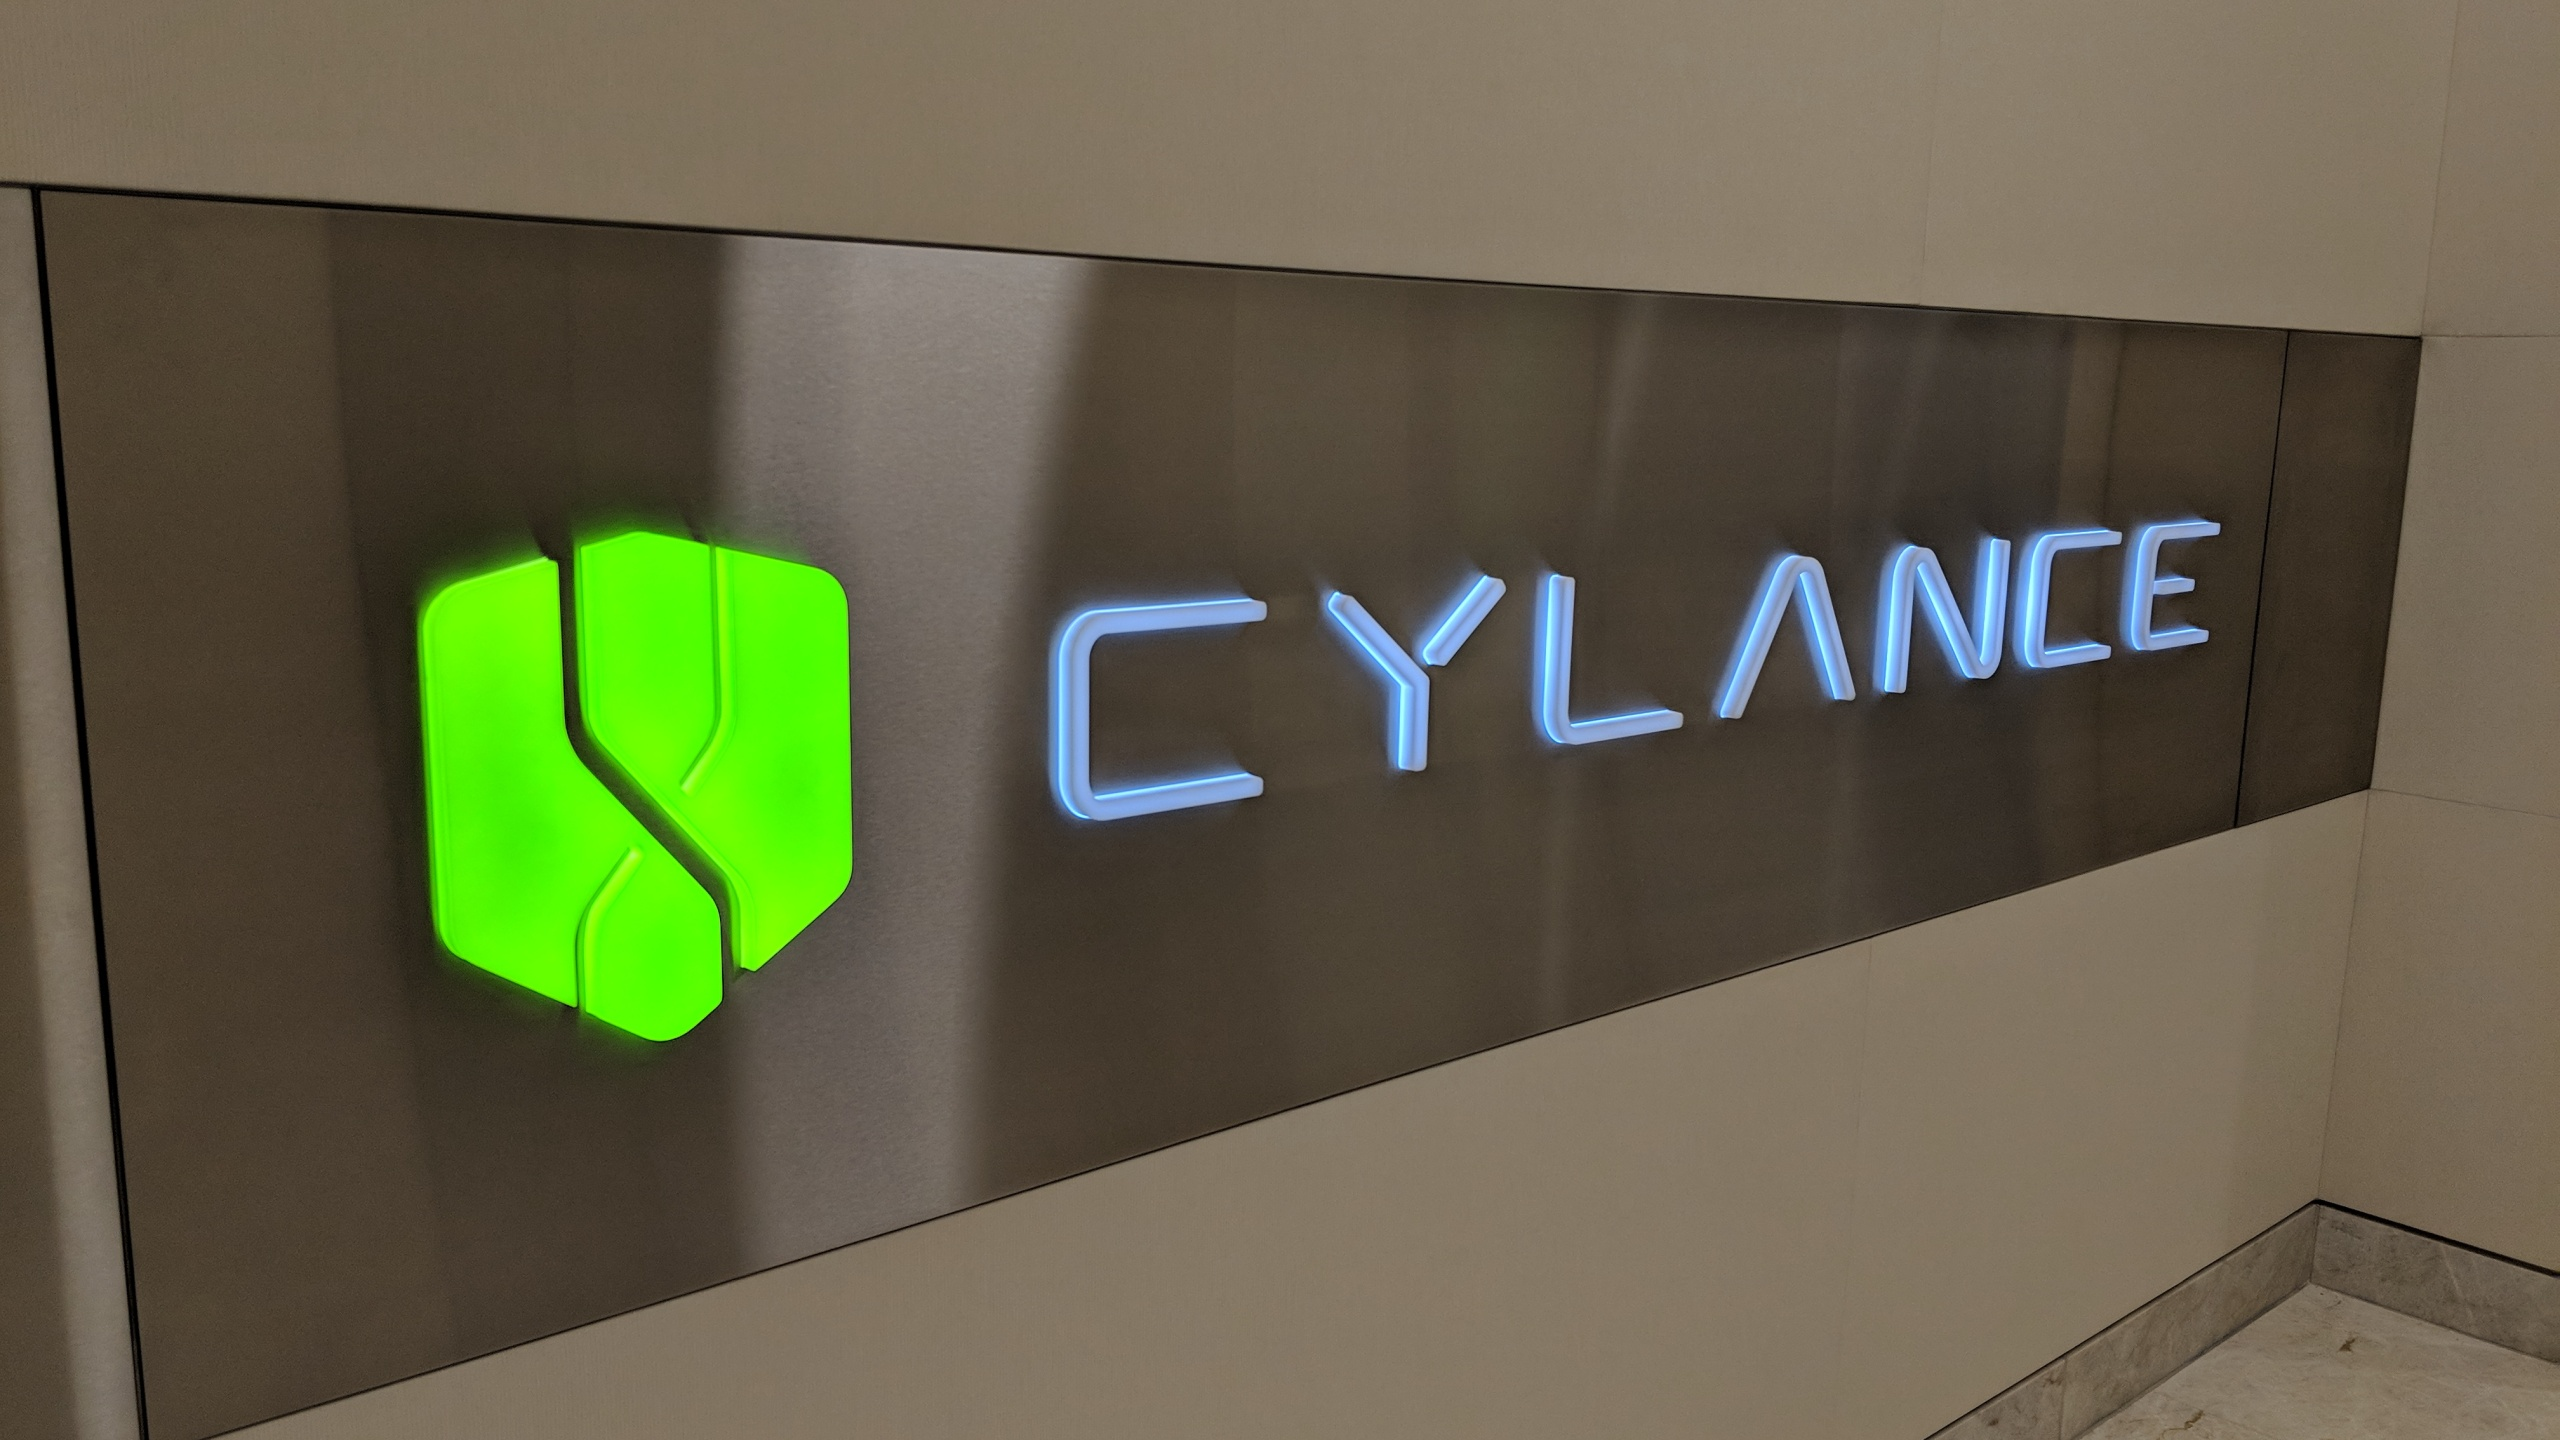 cylance logo sign at corporate headquarters in irvine california